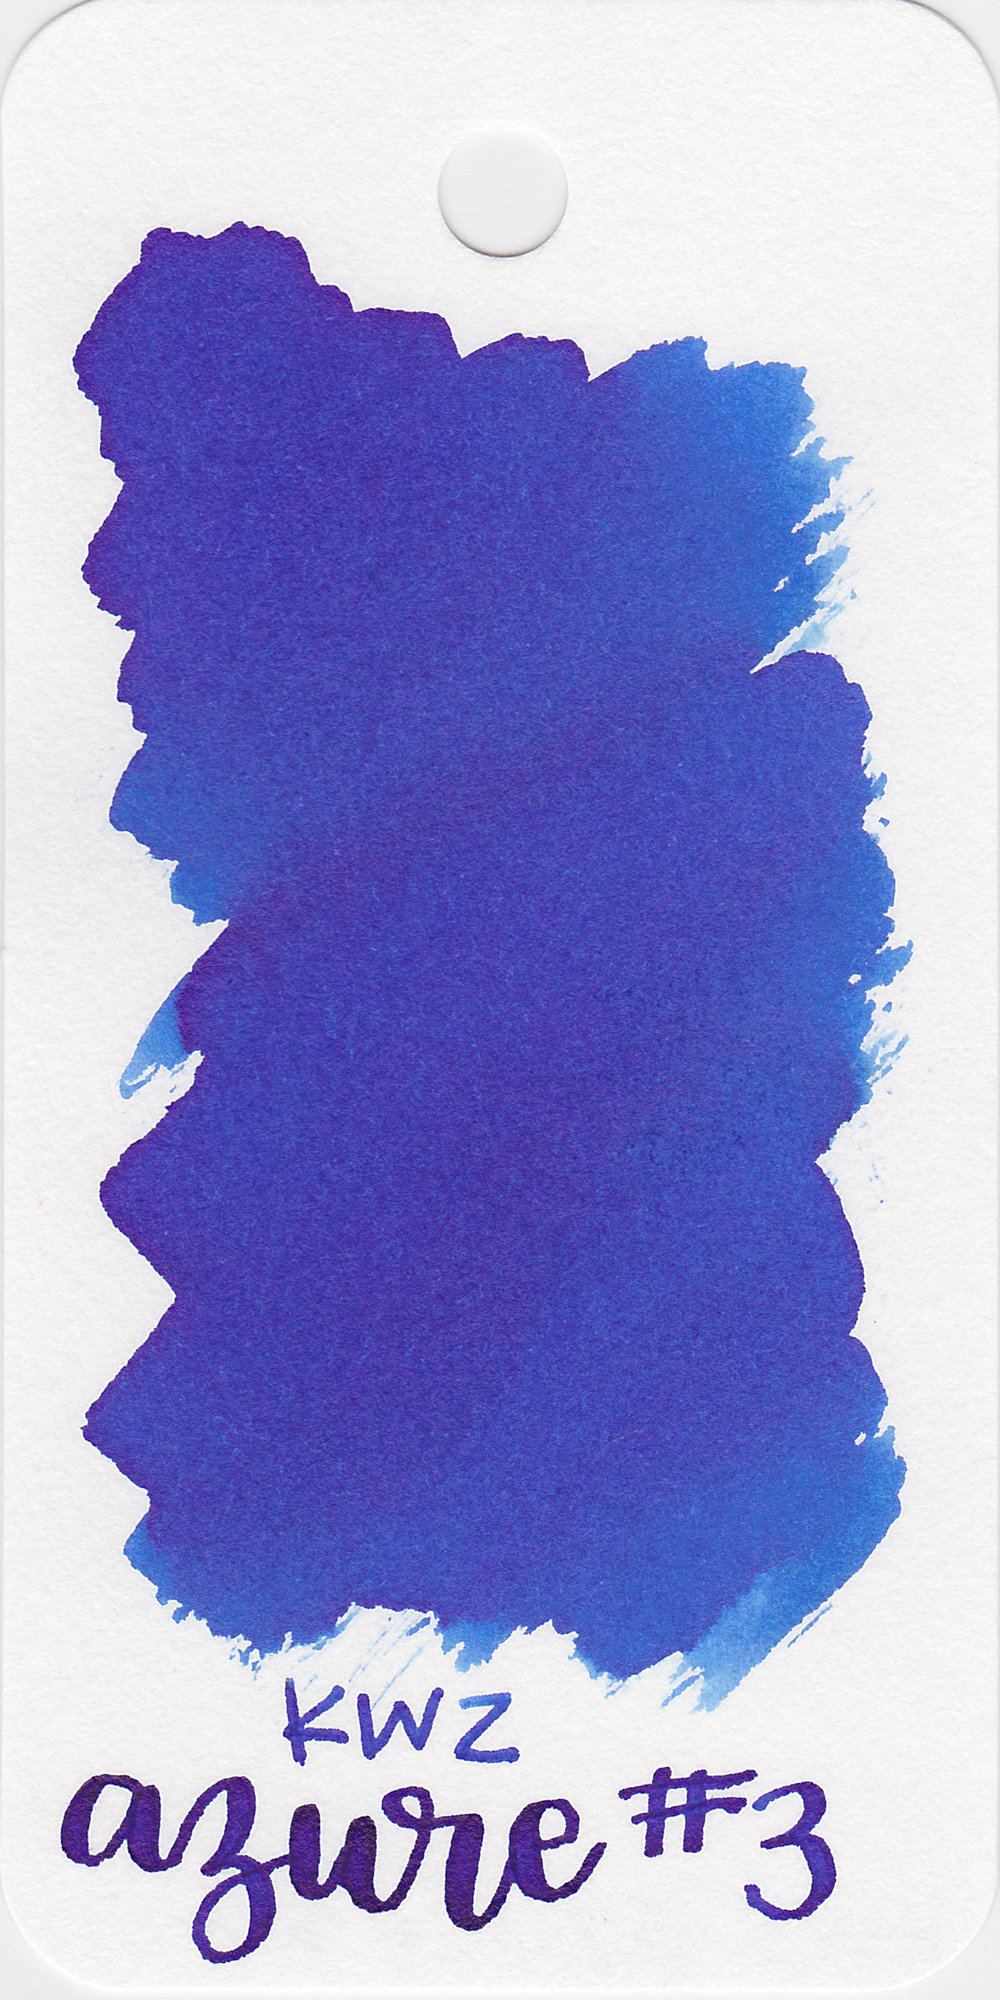 The color: - Azure #3 is a pretty blue.